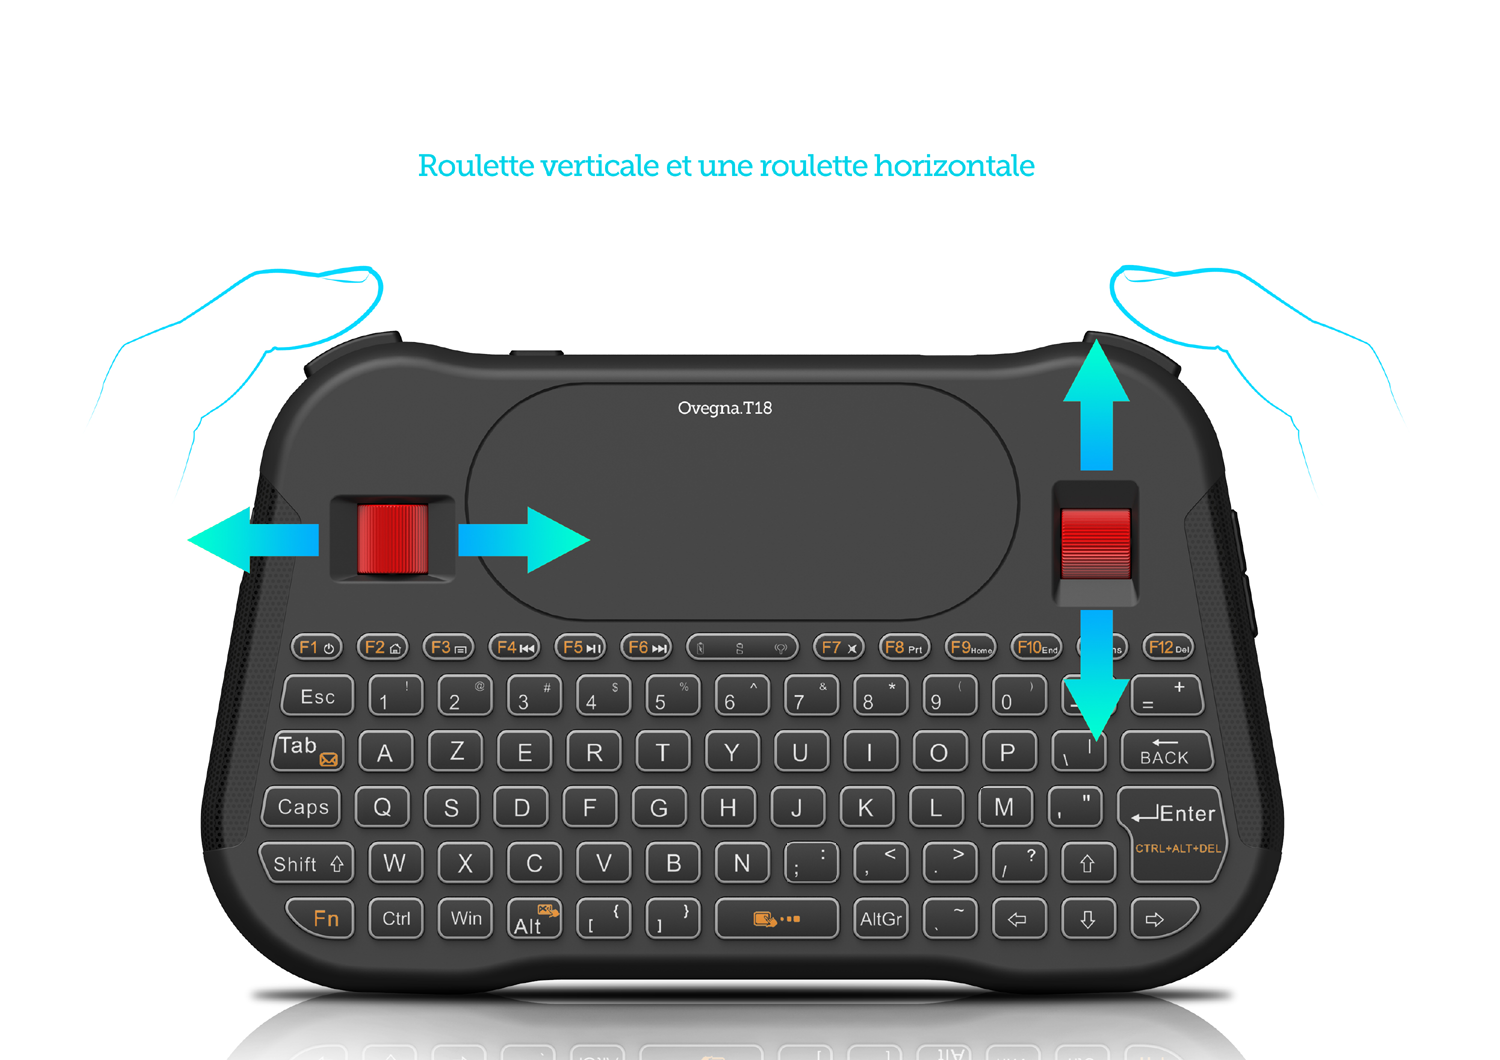 Ovegna T18: Mini Wireless Keyboard (AZERTY), Wireless 2.4Ghz, Touchpad, Rechargeable Battery, RGB backlit, for Smart TV, PC, Mini PC, Mac, Raspberry PI 2/3/4, Consoles, Laptop and Android Box Hover